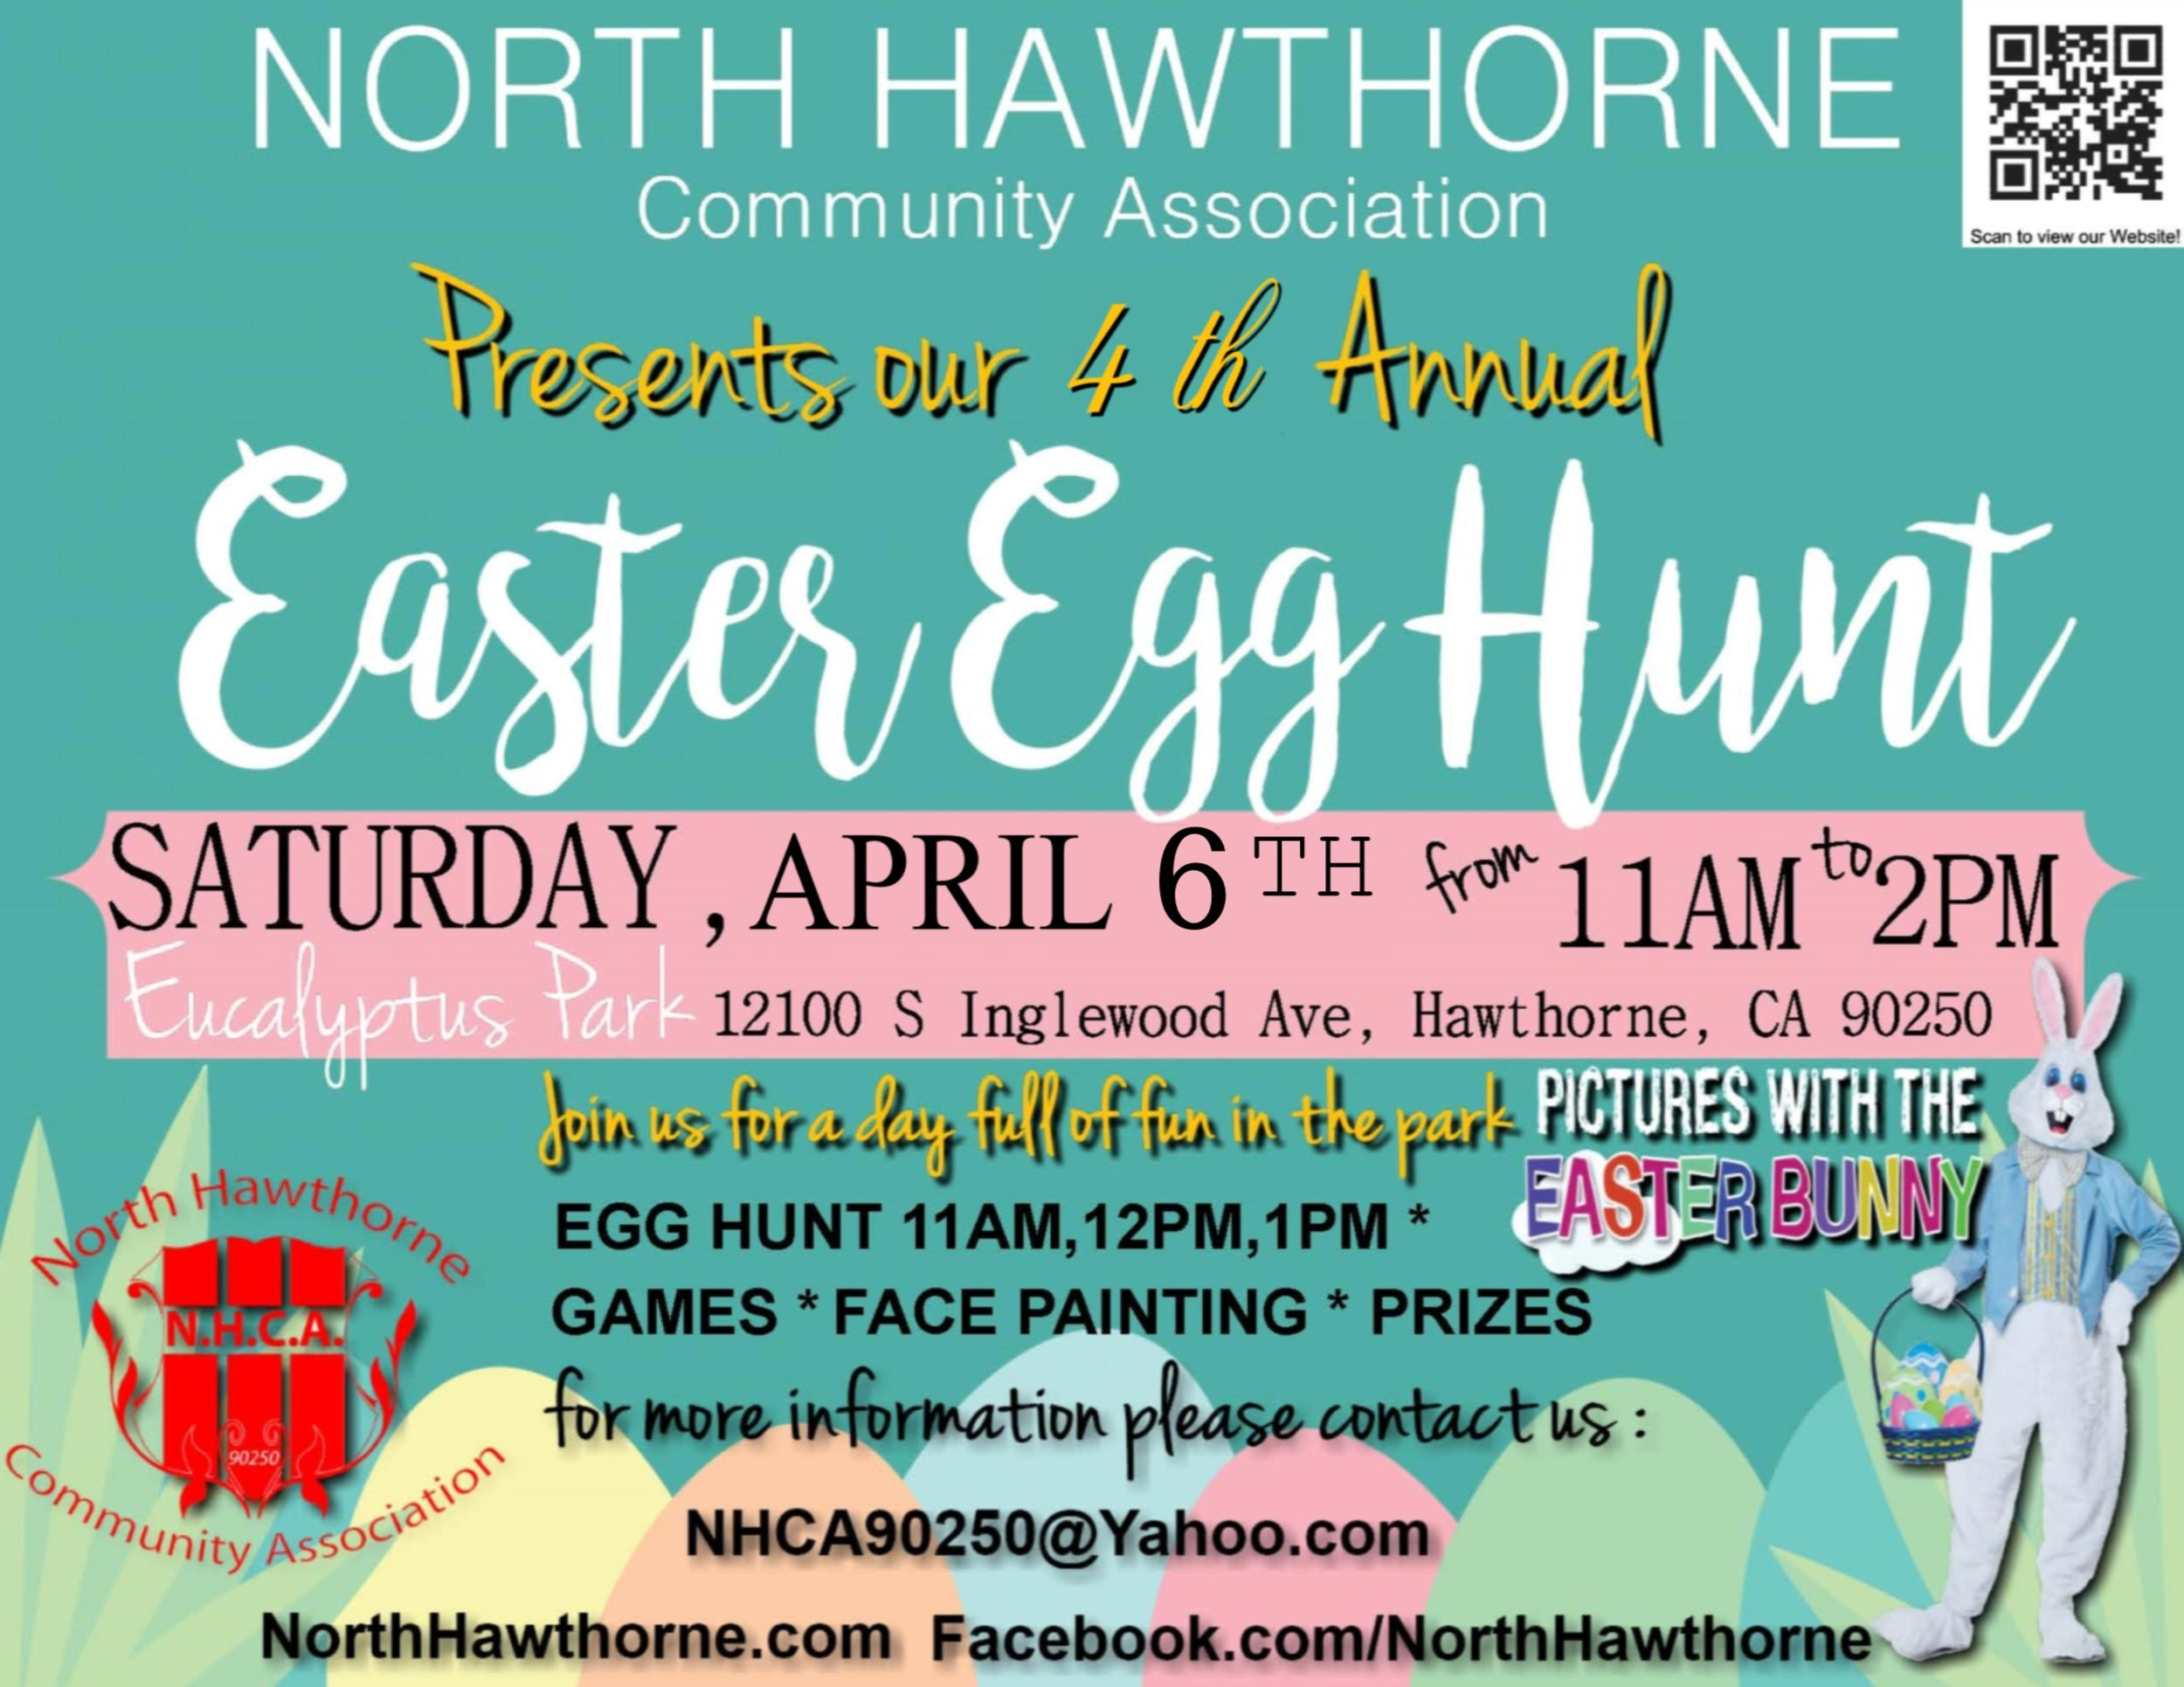 North Hawthorne Community Association 4th Annual Easter Egg Hunt